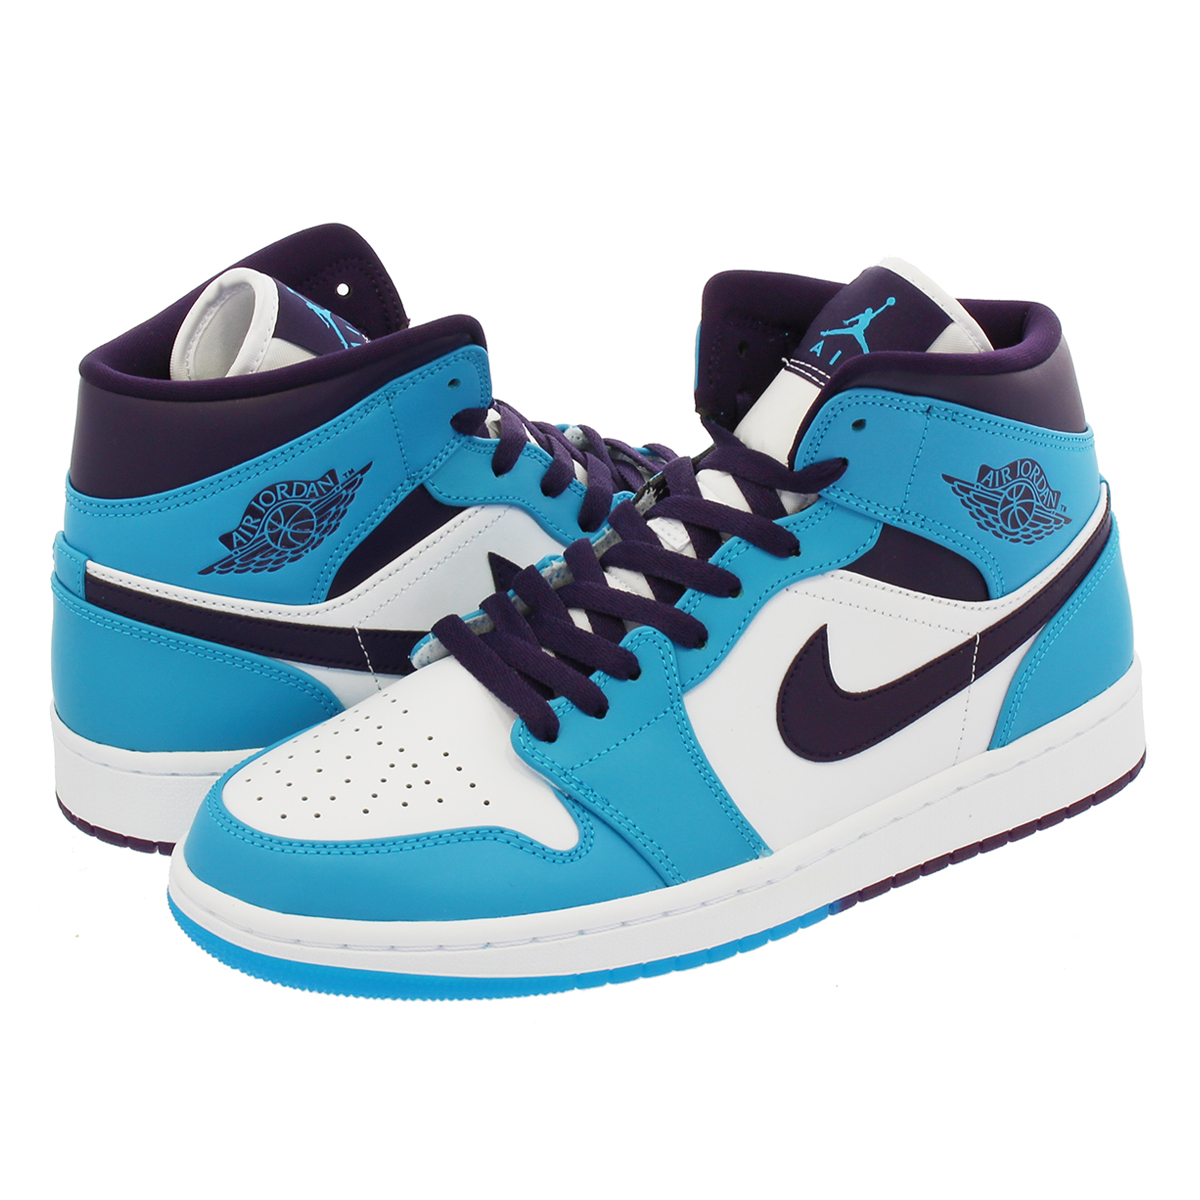 f8d63b168dec ... cheap nike air jordan 1 mid nike air jordan 1 mid blue lagoon grand purple  white